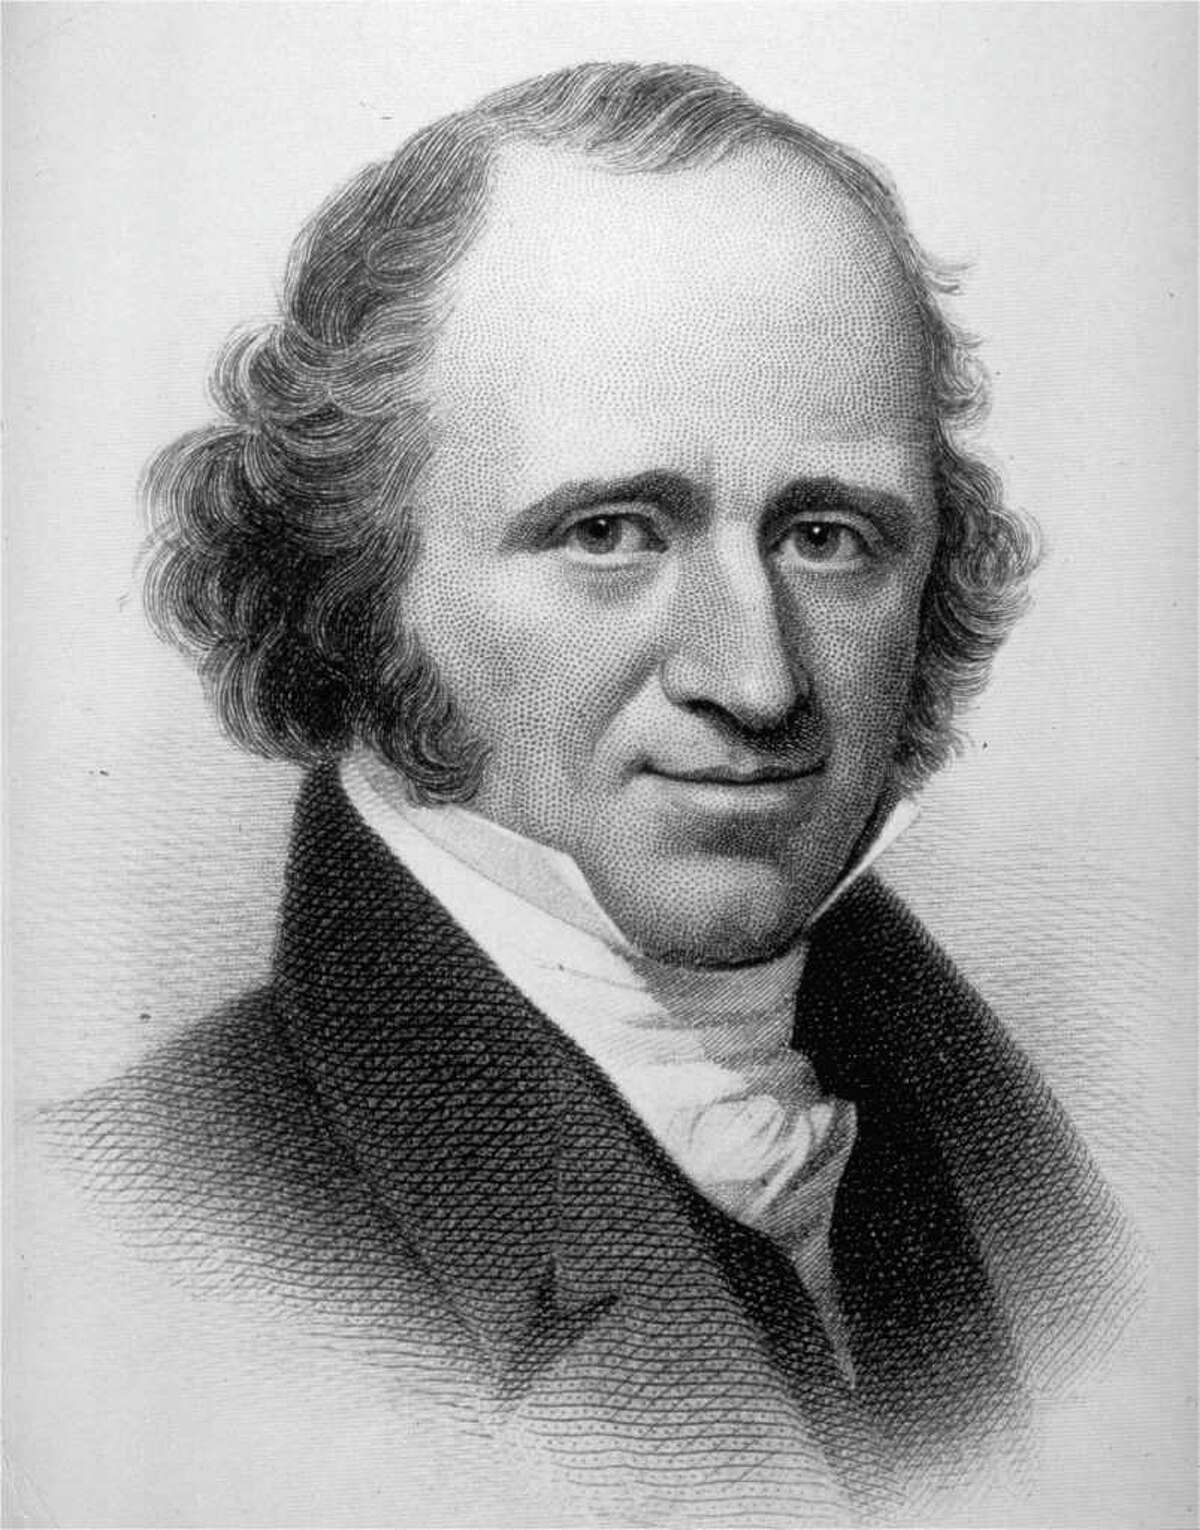 6. Martin Van Buren Old Kinderhook actually did live to be old. At 58 when he left office in 1841, he died 21.39 years later.